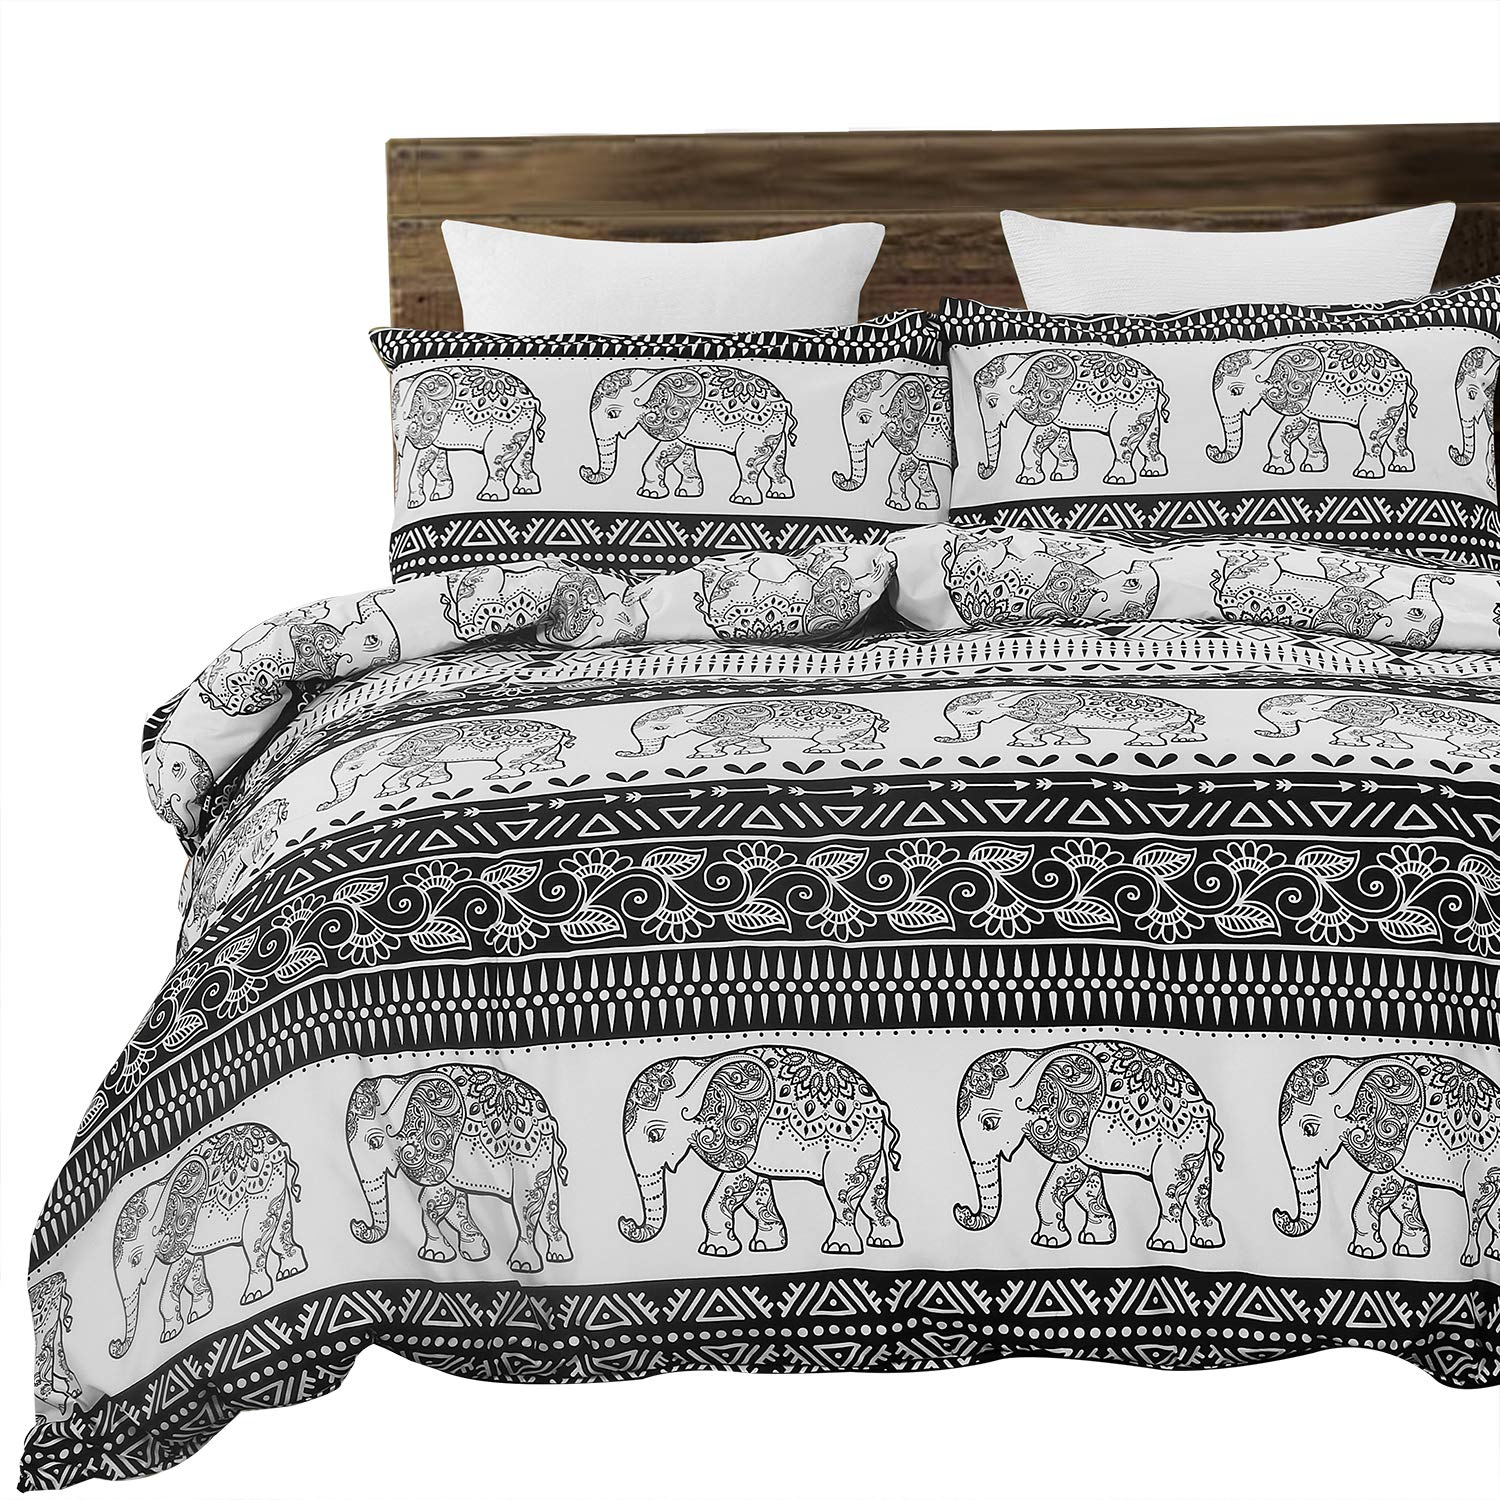 Vaulia Soft Microfiber Duvet Cover Set, Mandala and Bohemia Exotic Patterns Inspired Design - Queen Size